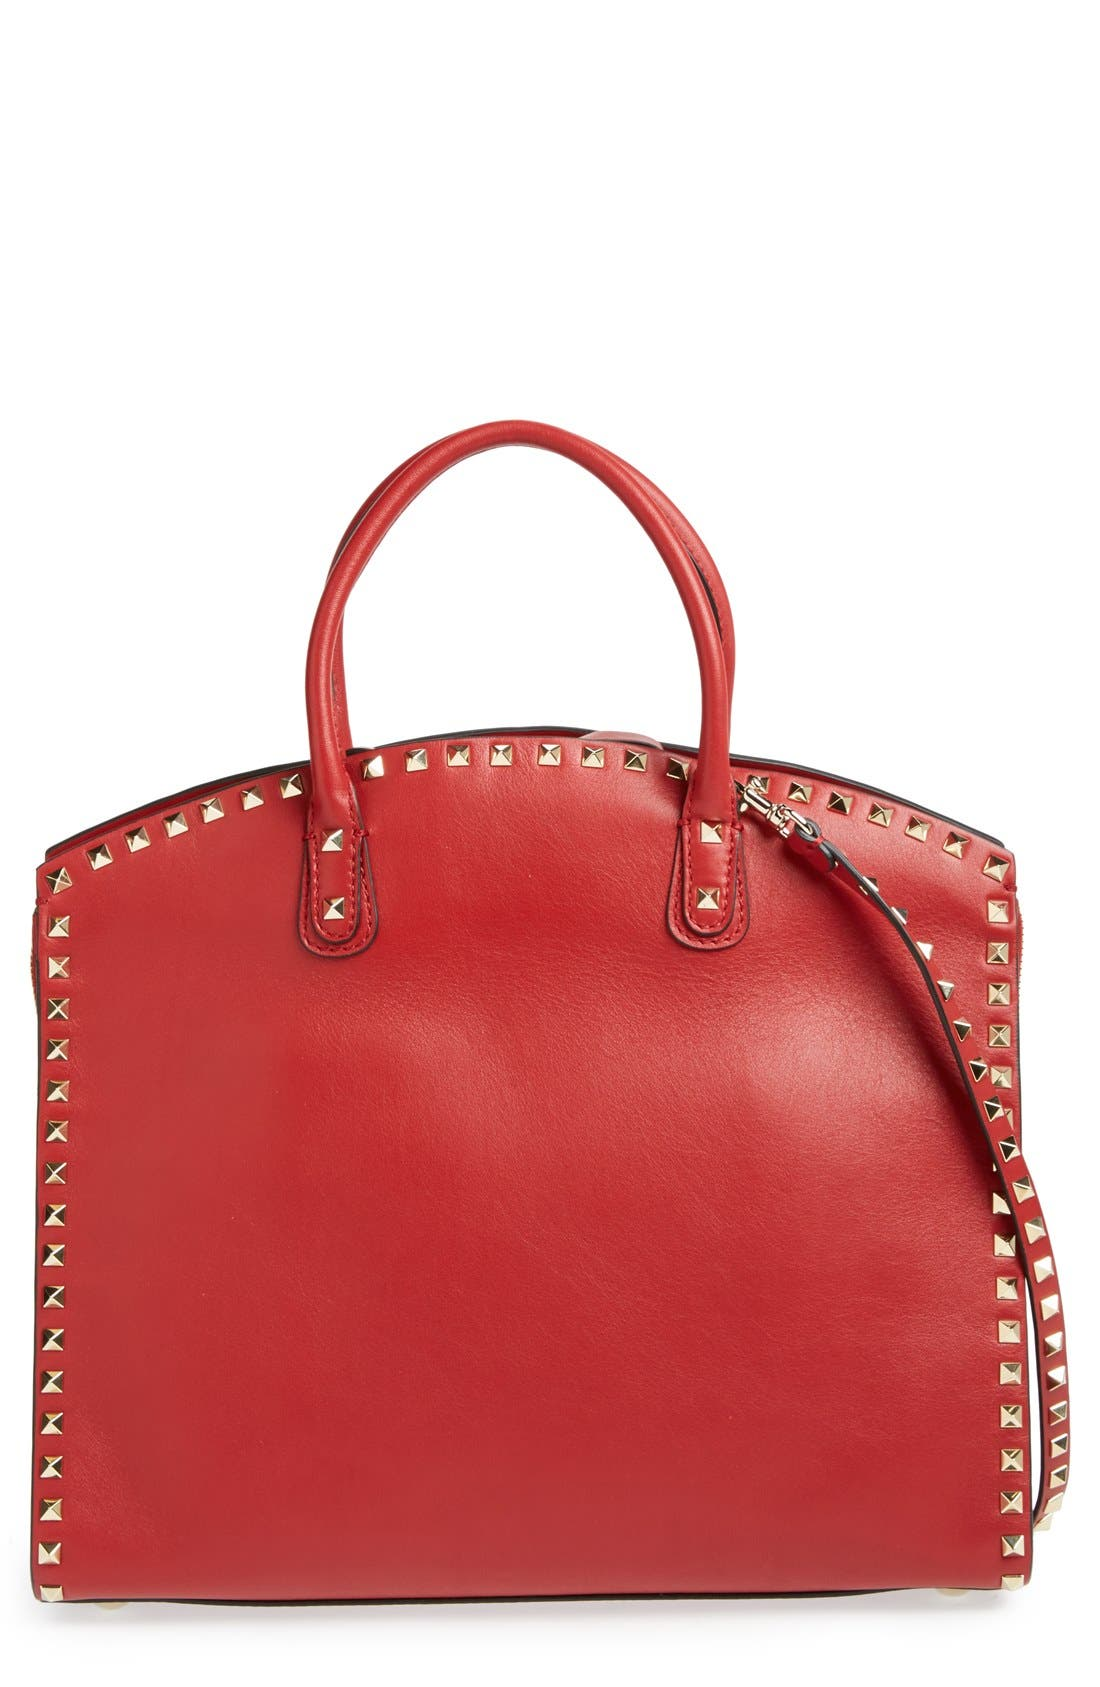 Main Image - Valentino 'Rockstud' Leather Dome Satchel